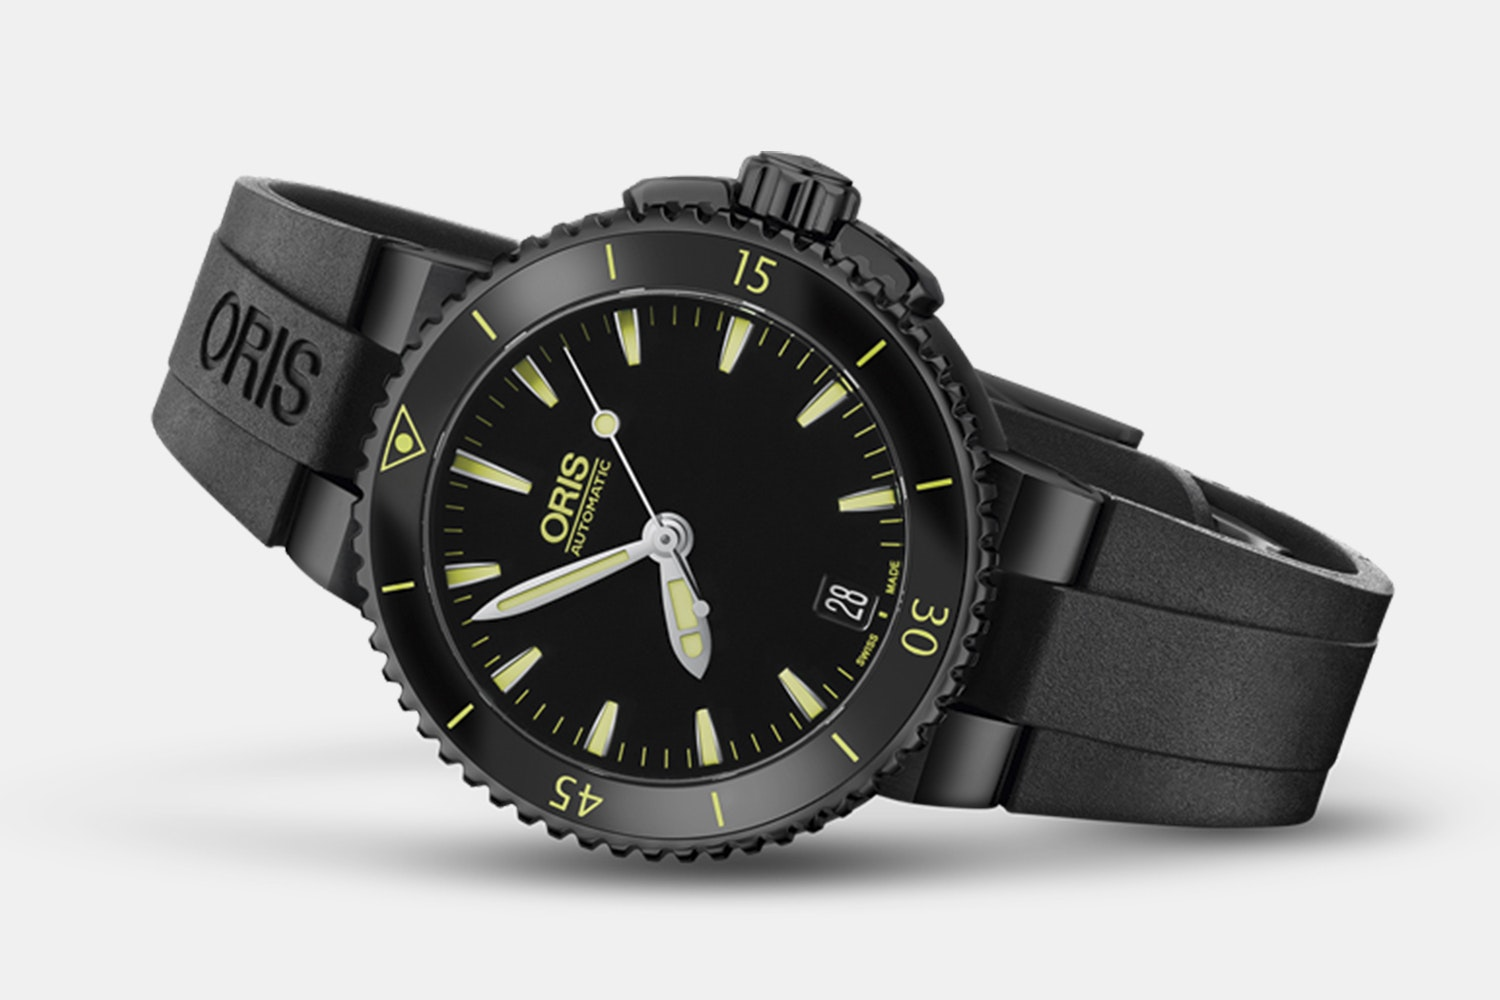 Oris Aquis Ladies' Automatic Watch